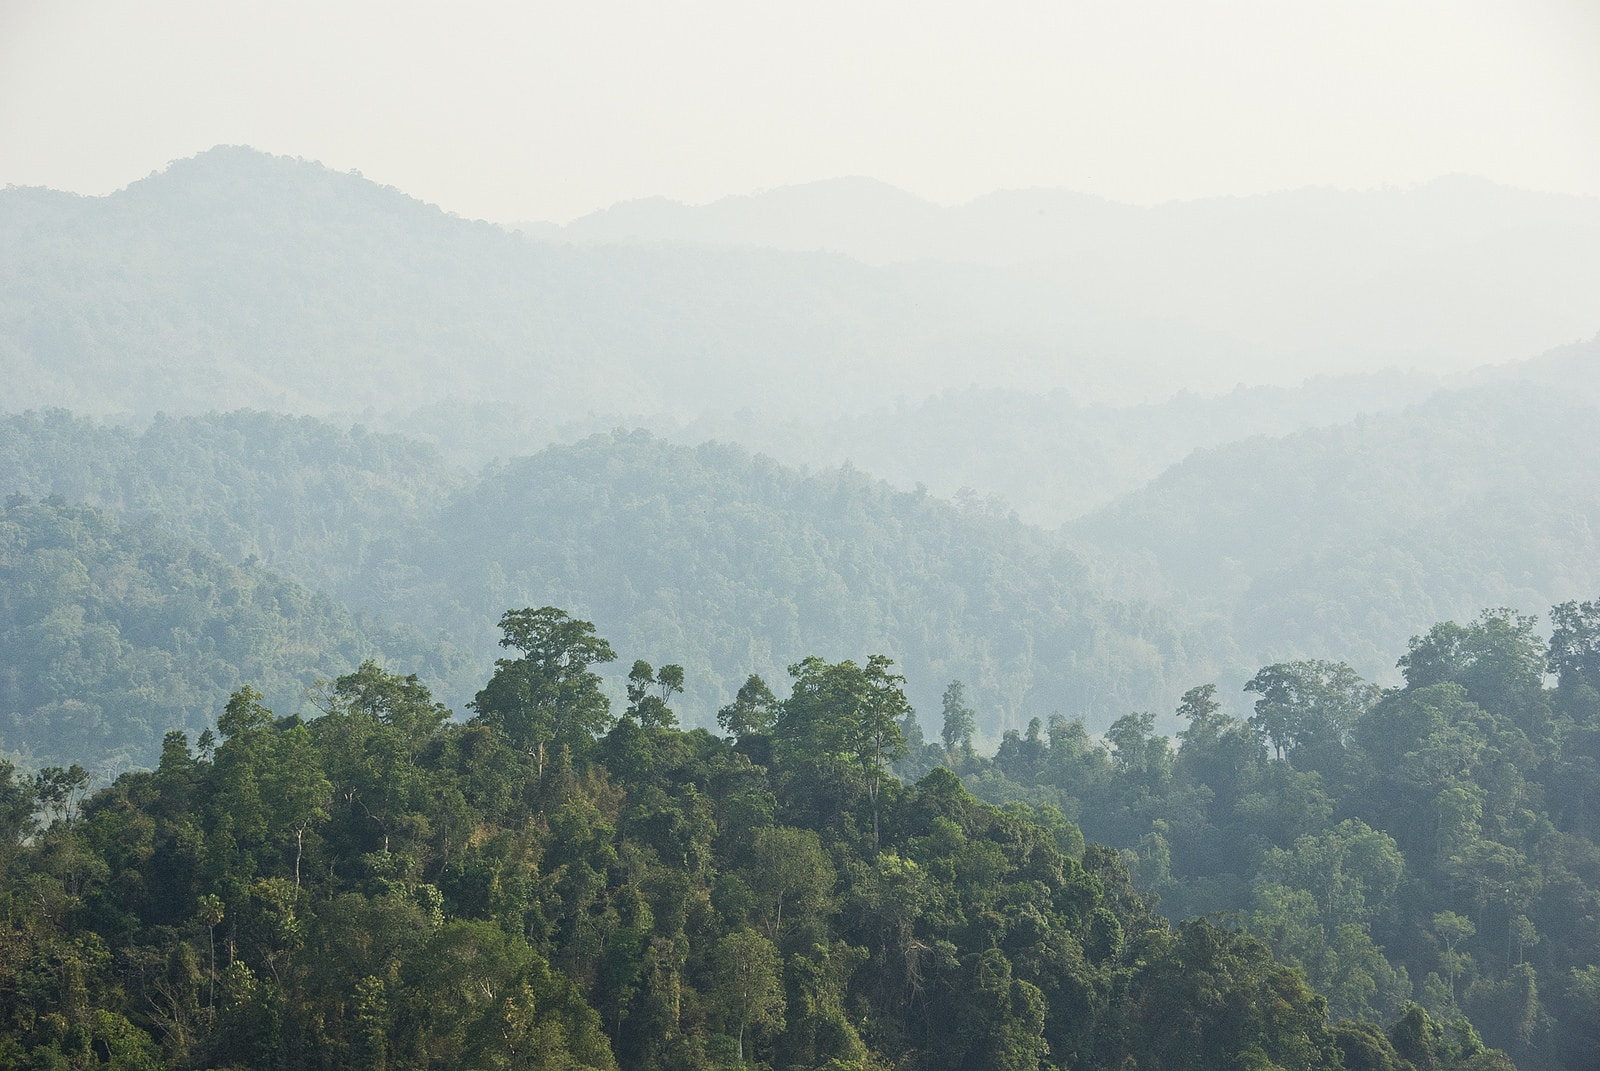 Jungle covered mountains of Laos - Lost With Purpose